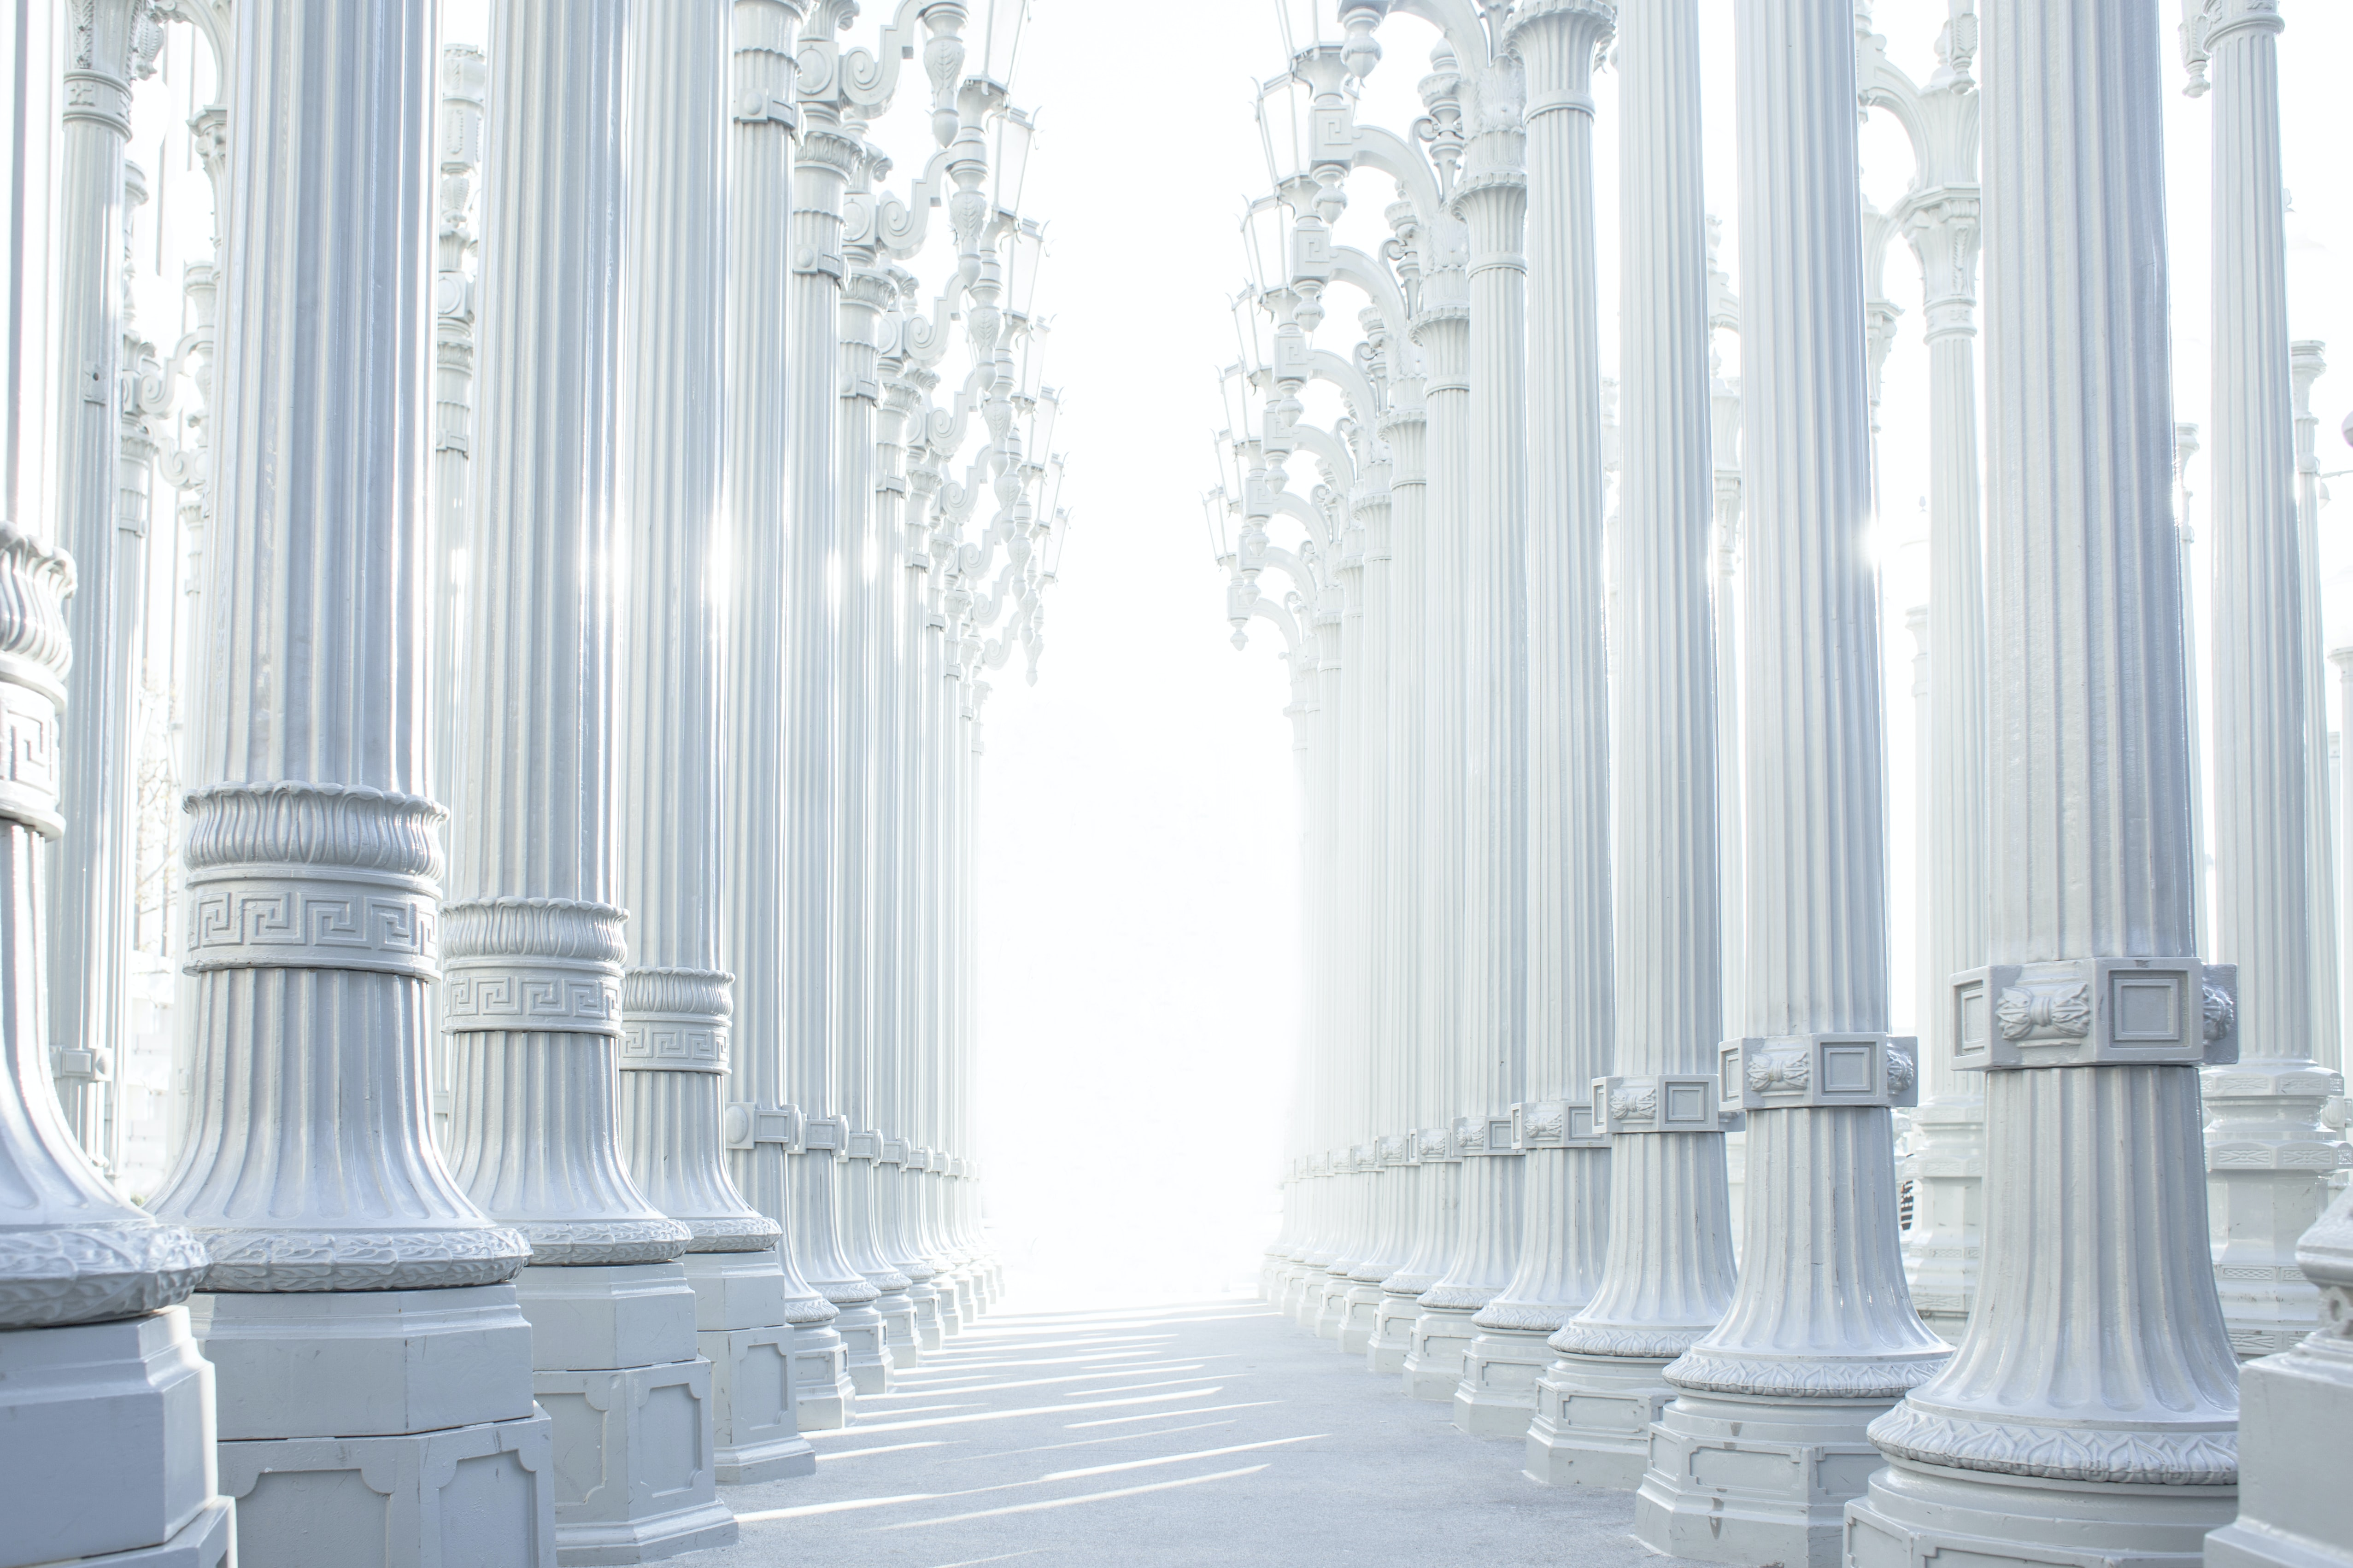 Impressive pillar white architecture with central path and light streaming in